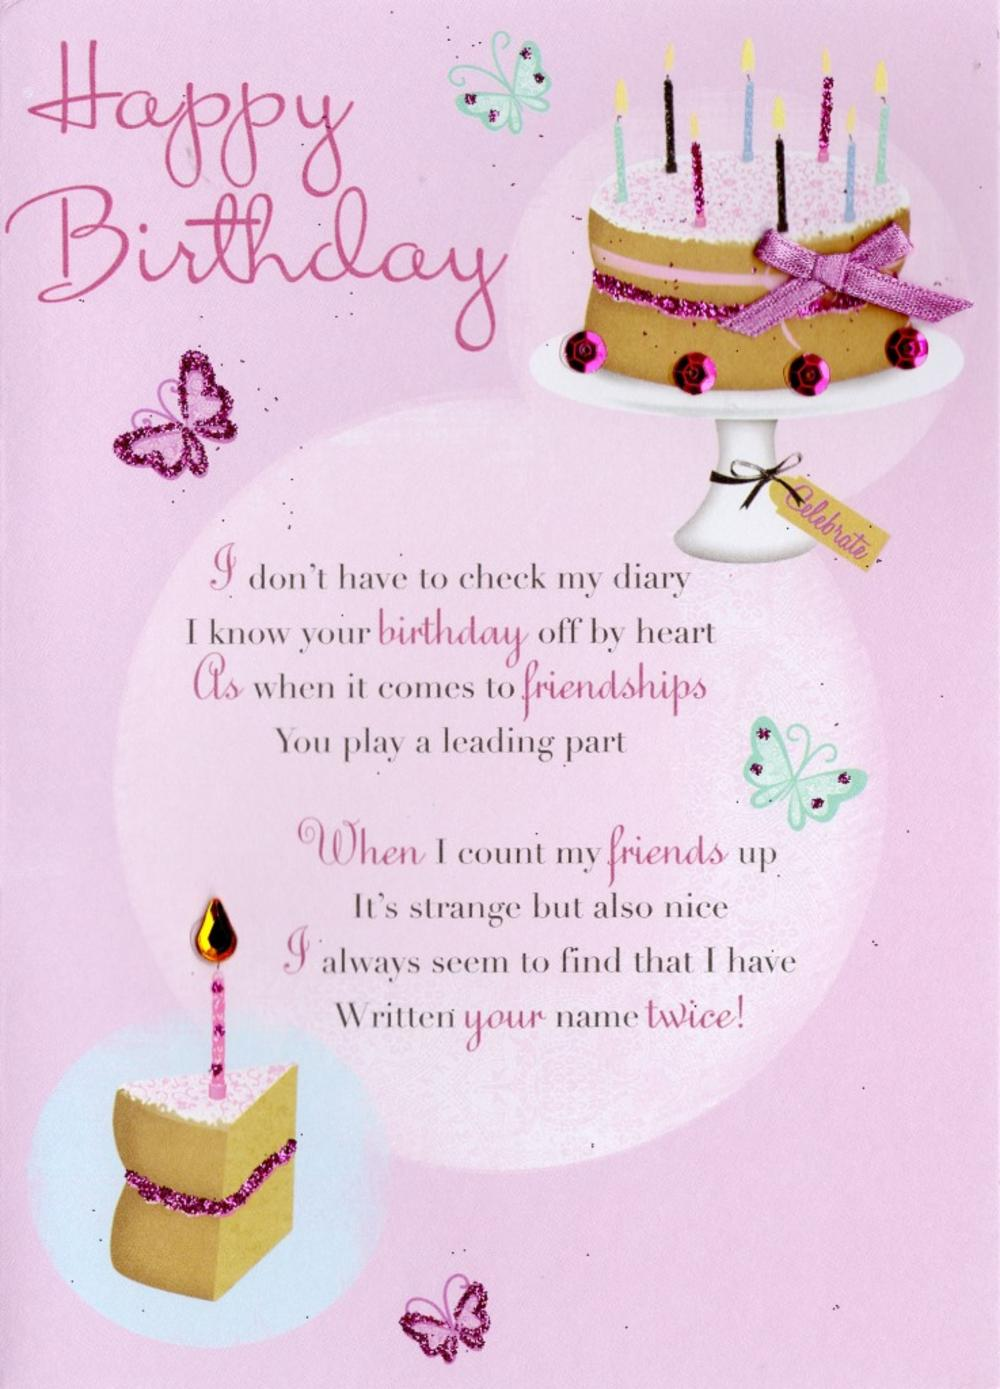 Birthday Wishes Card For Friend ~ Friend happy birthday greeting card cards love kates